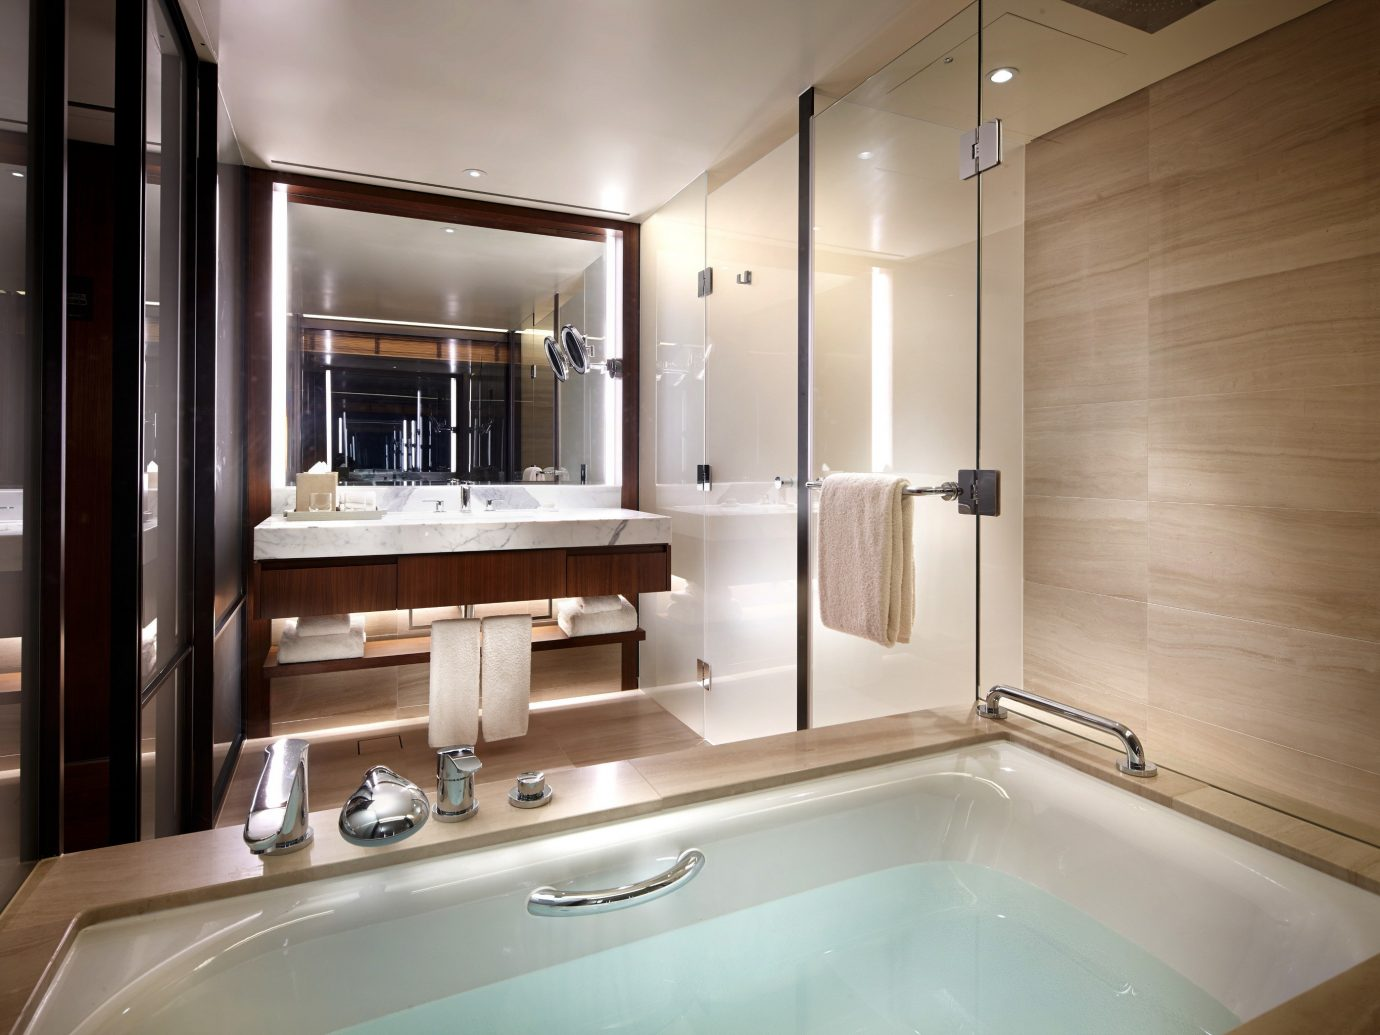 Hotels Luxury Travel indoor bathroom wall sink mirror vessel room interior design toilet counter plumbing fixture interior designer tub bathtub Bath